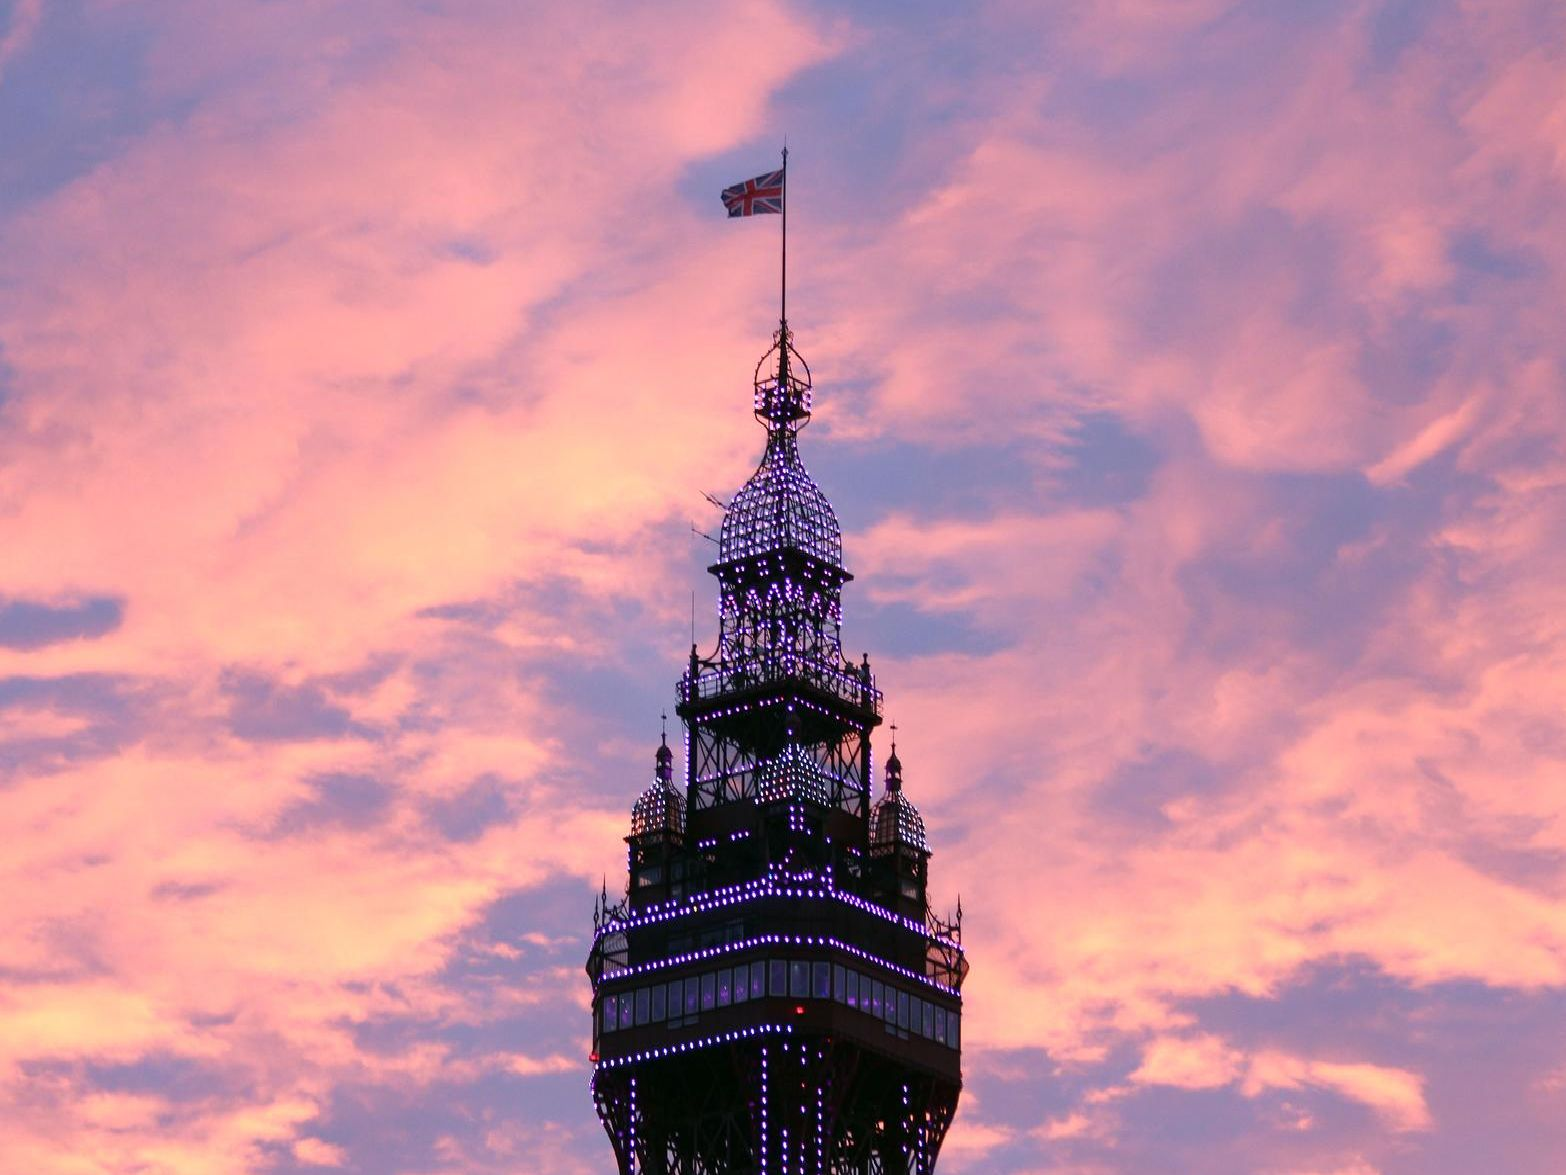 There will be a year-long programme of events to celebrate the 125th birthday of two of Blackpools most famous heritage assets  The Blackpool Tower and The Grand Theatre